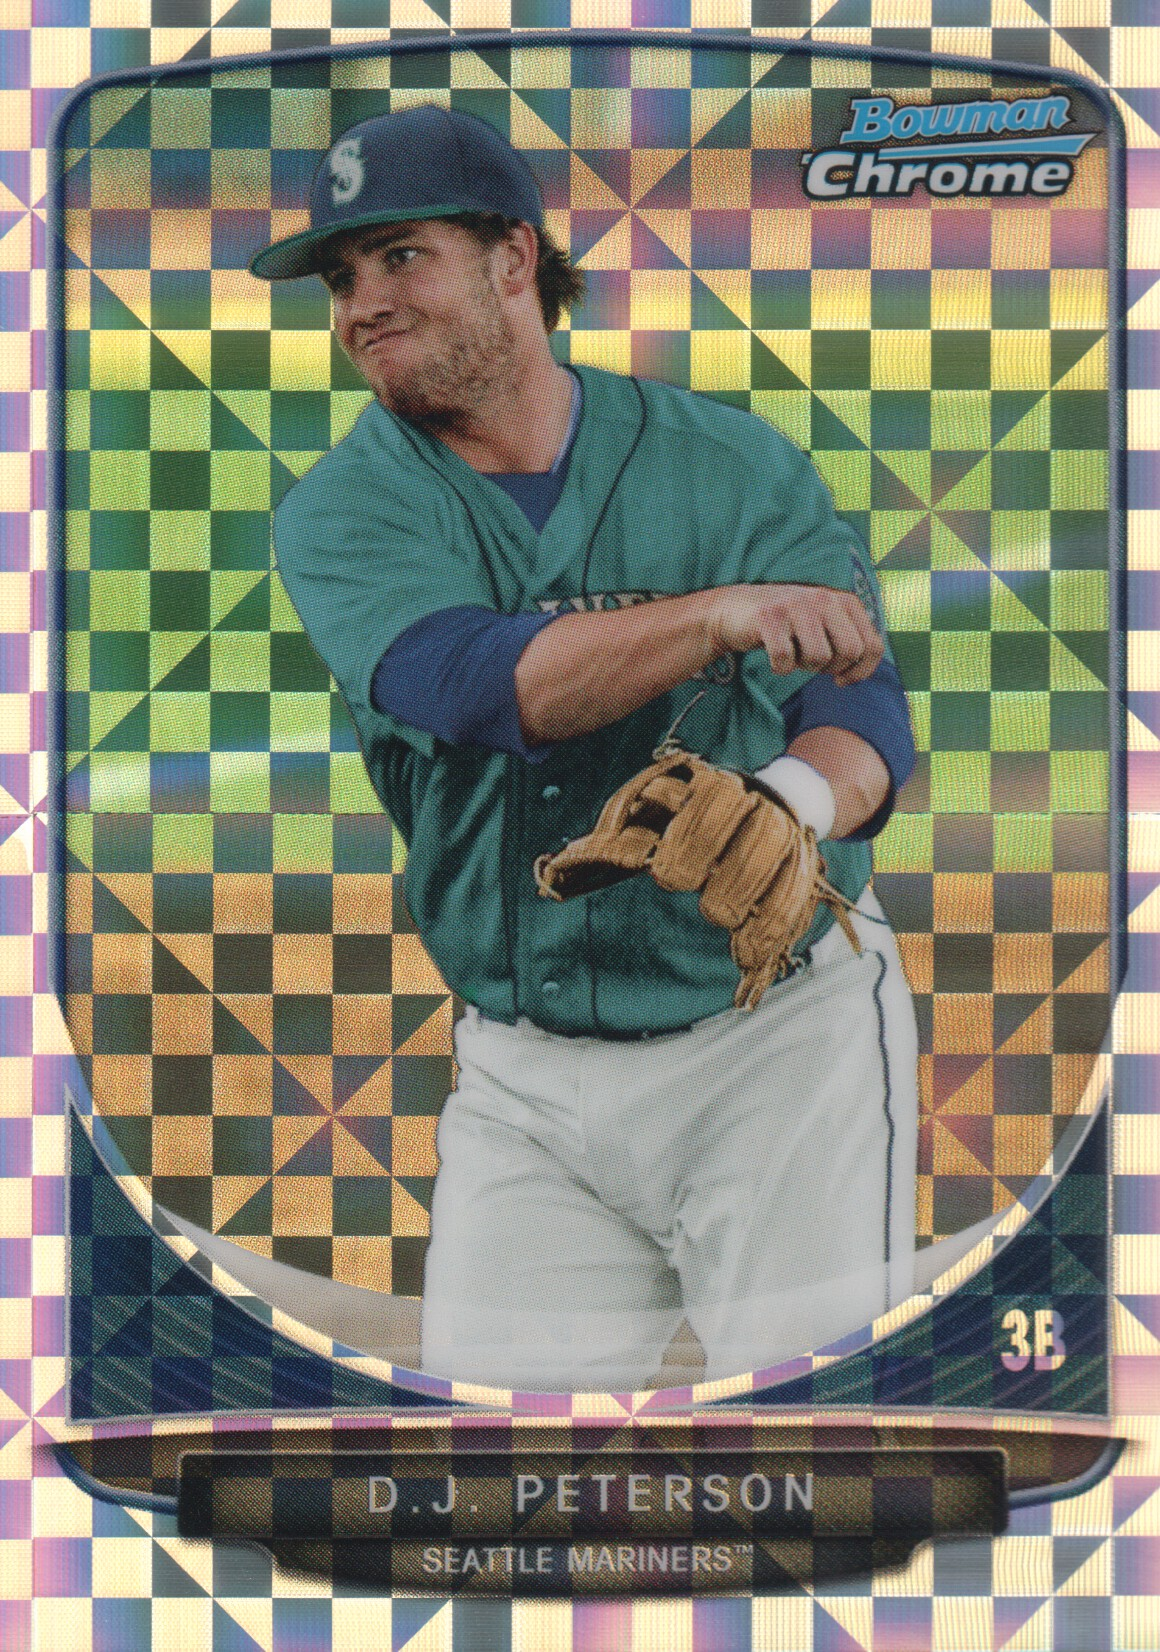 2013 Bowman Chrome Mini X-fractors #130 D.J. Peterson